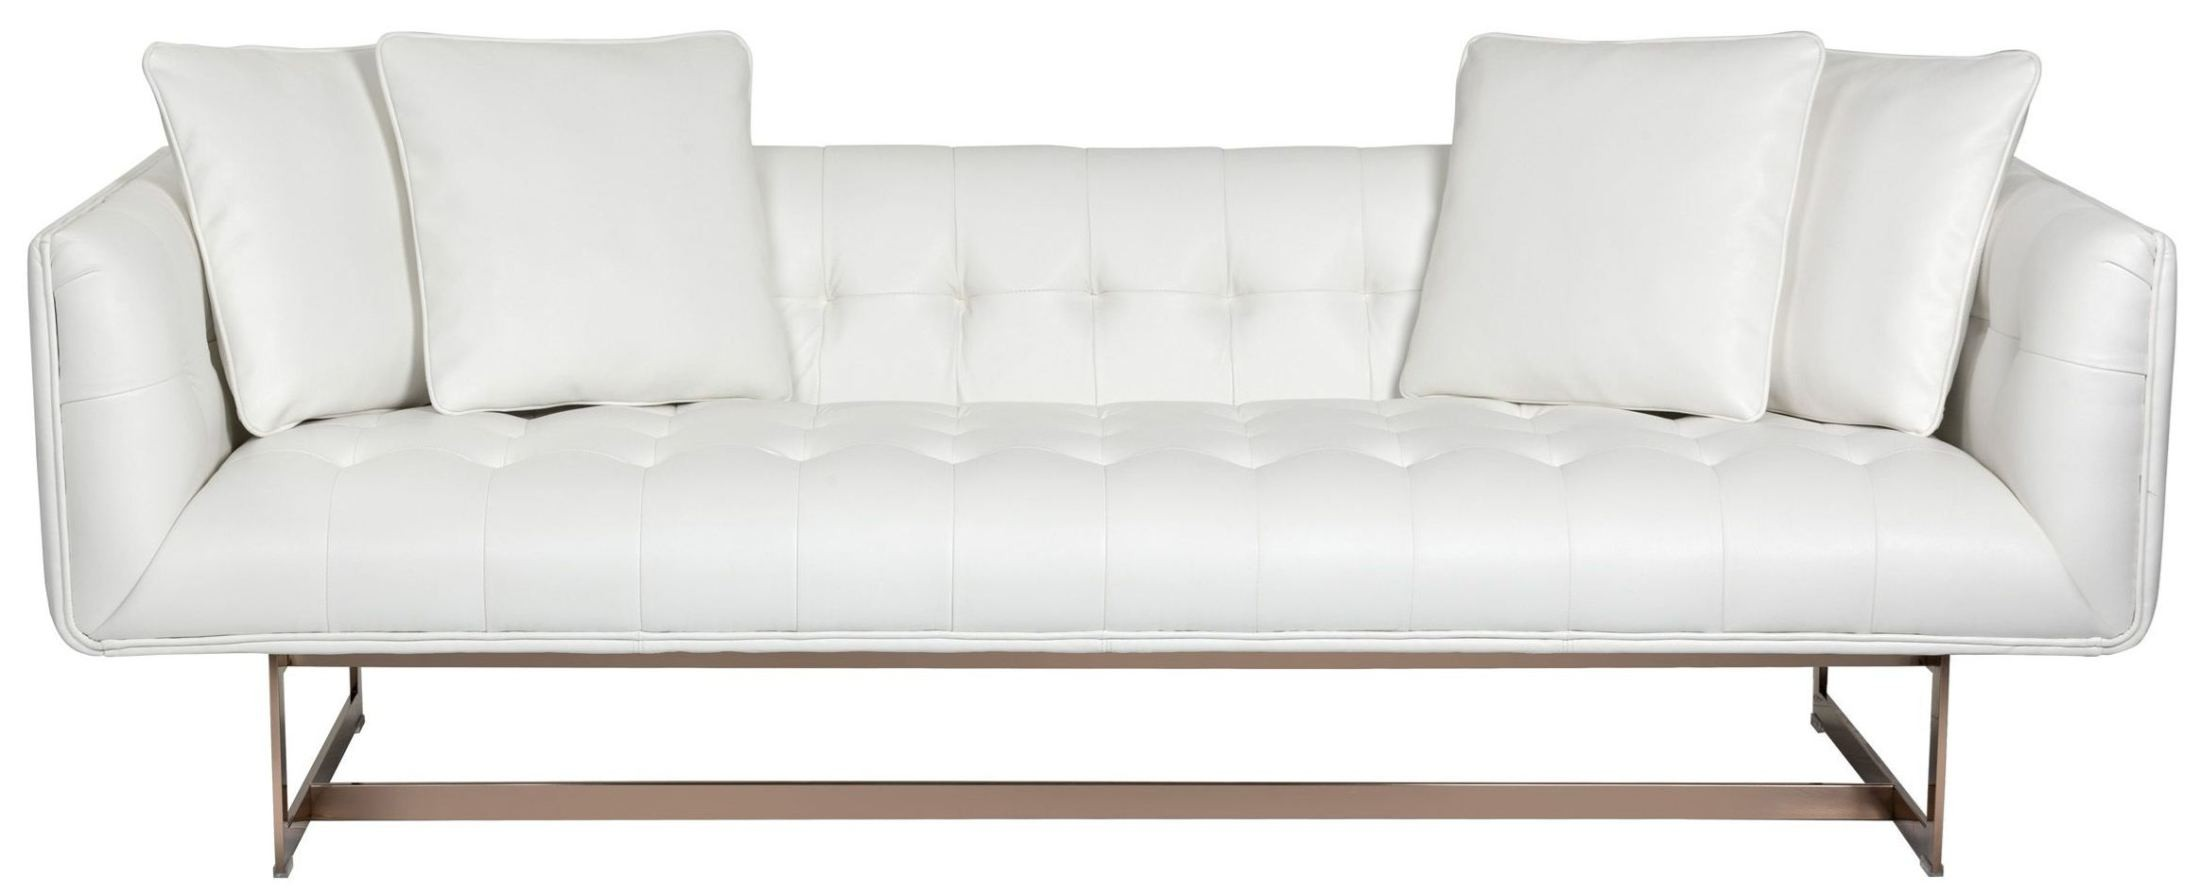 Matisse white leather sofa from sunpan coleman furniture for White leather sofa